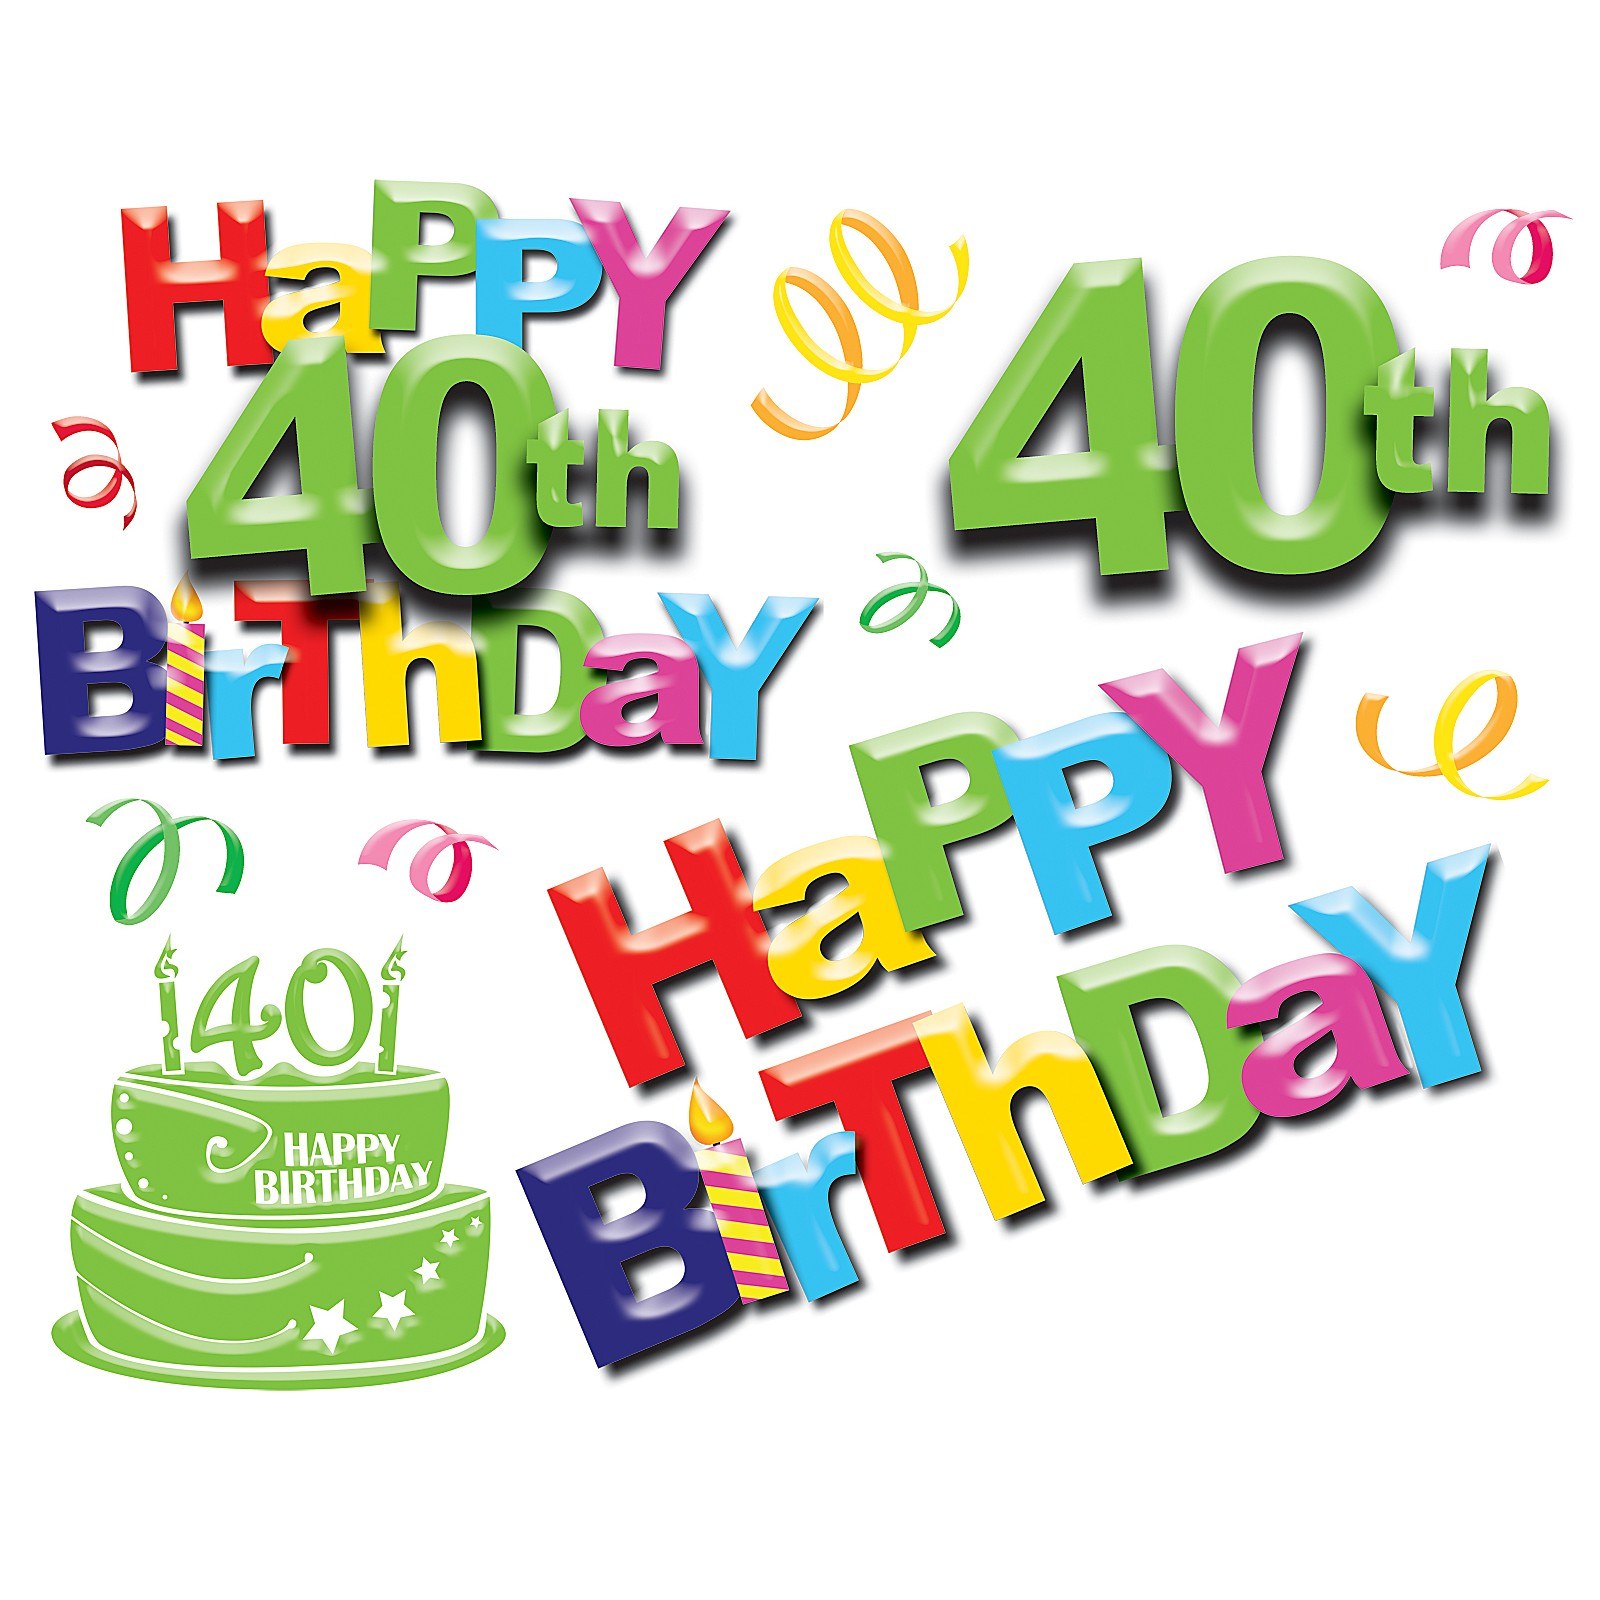 Cute Happy Birthday Pictures Facebook Free Download Best Cute